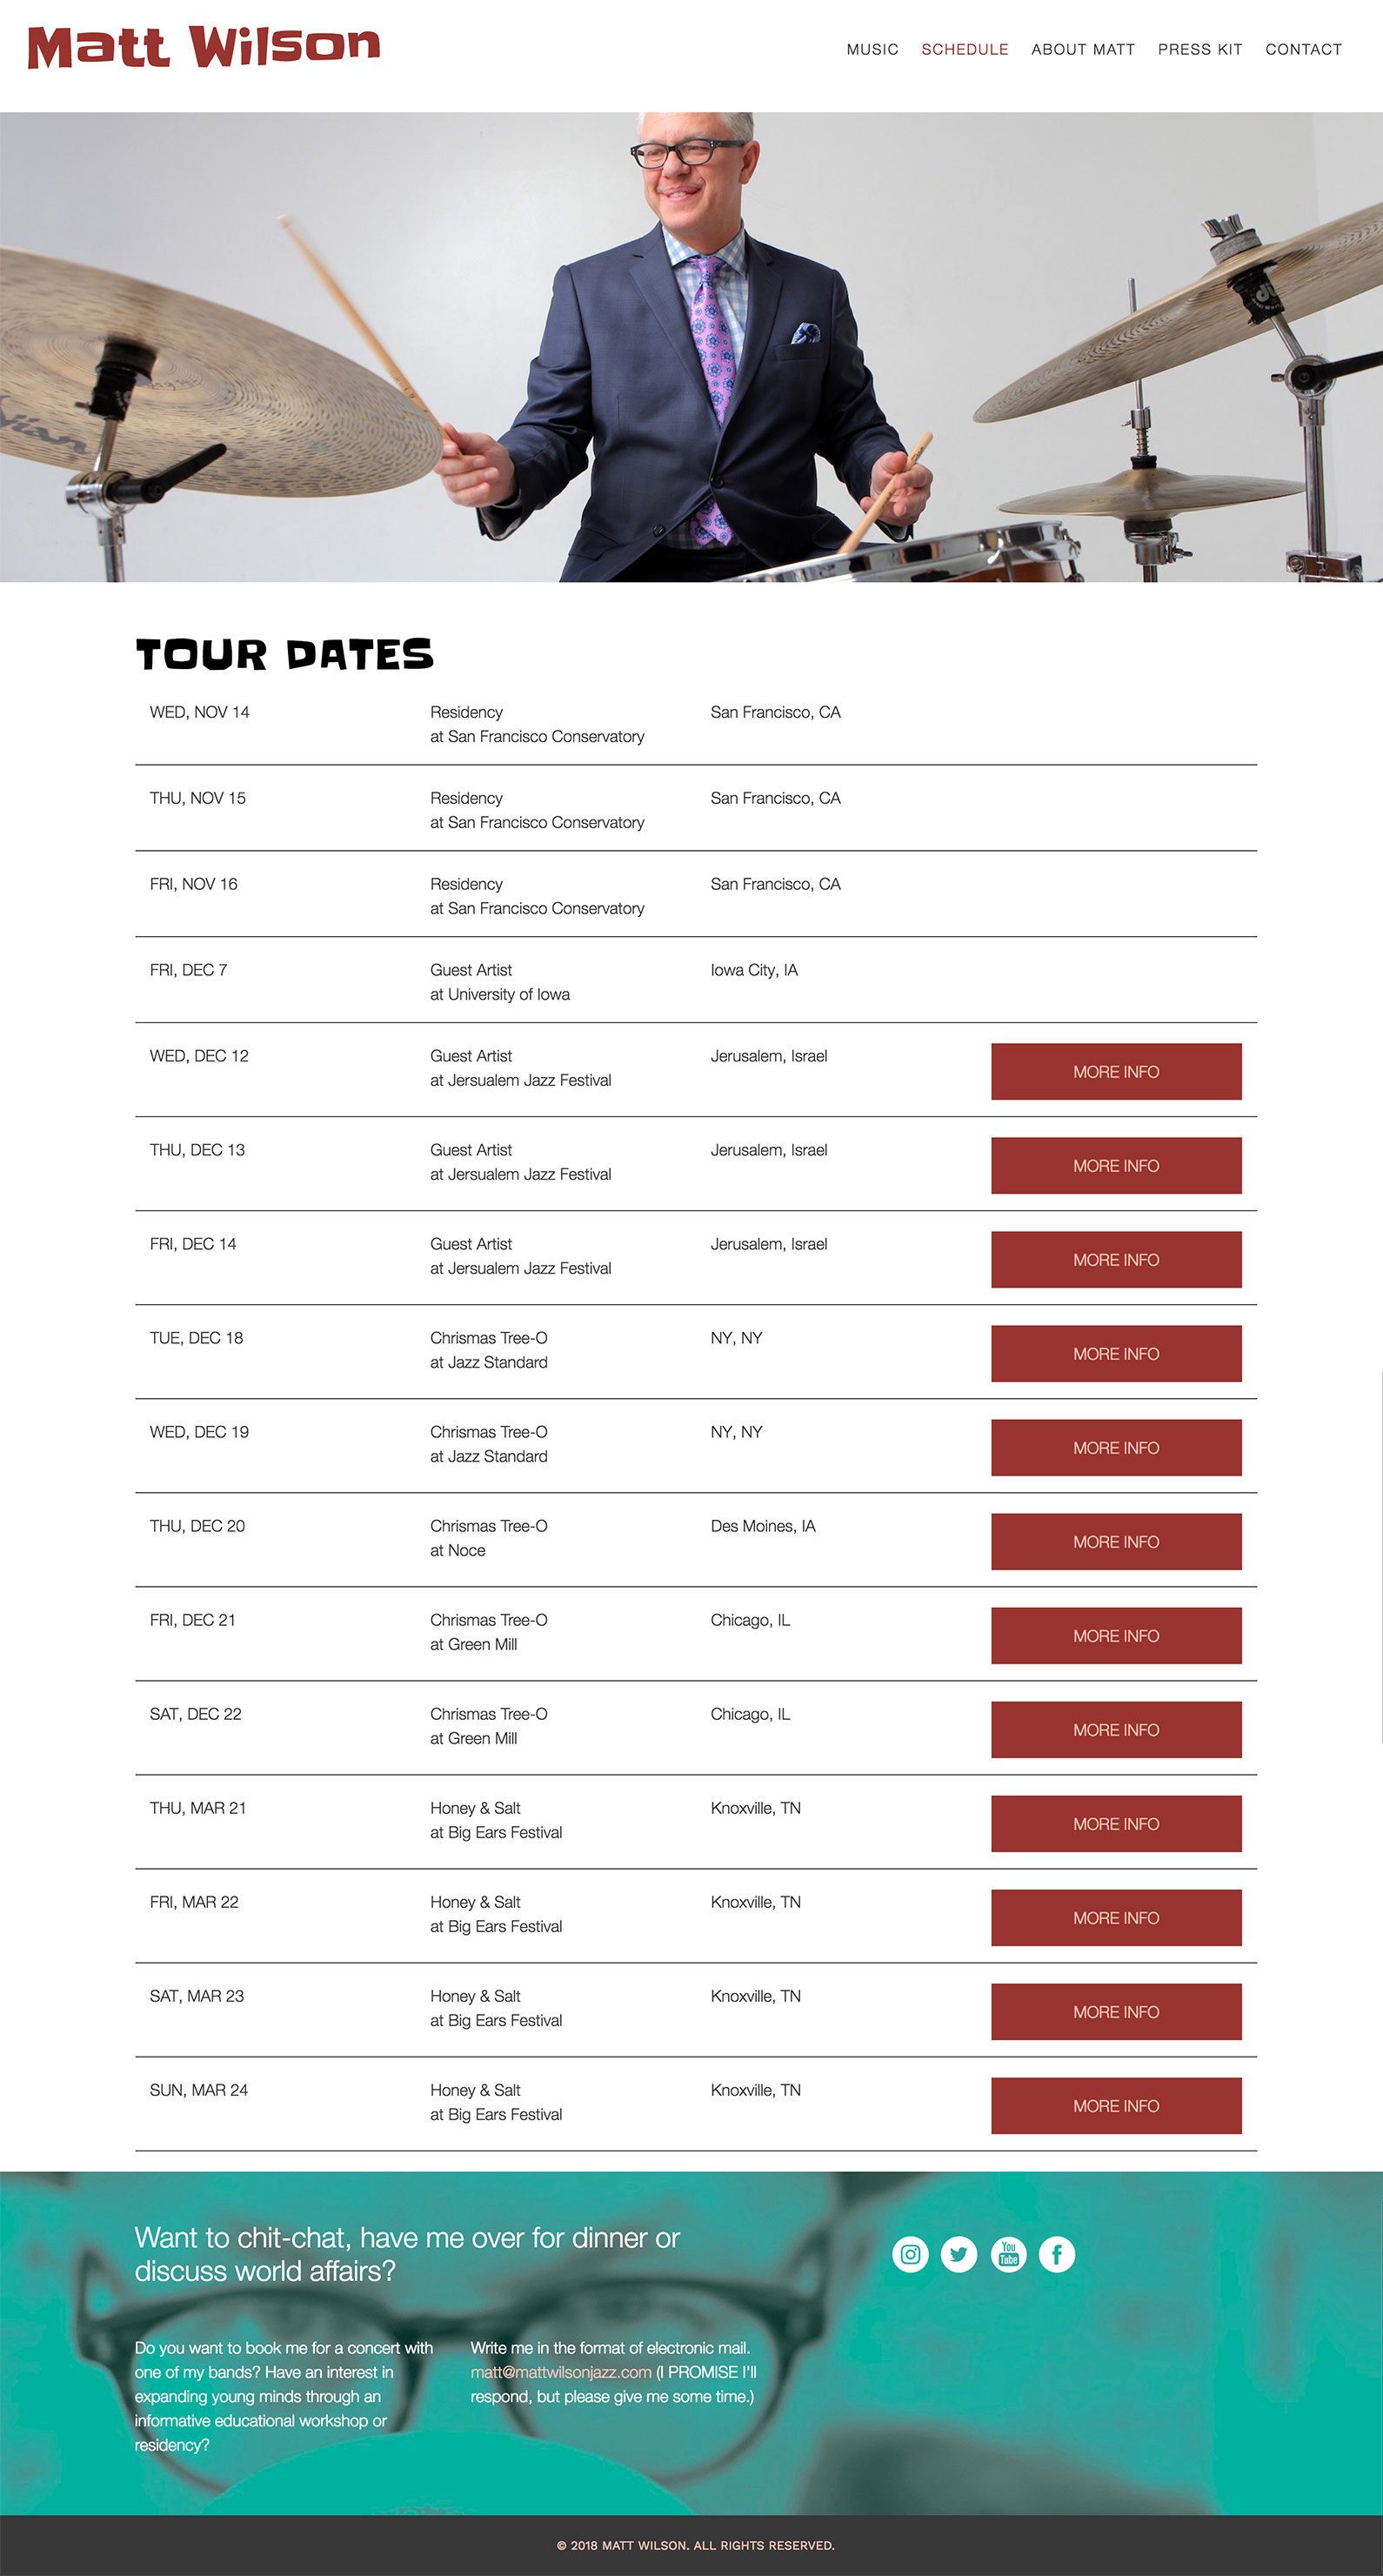 website tour dates layout